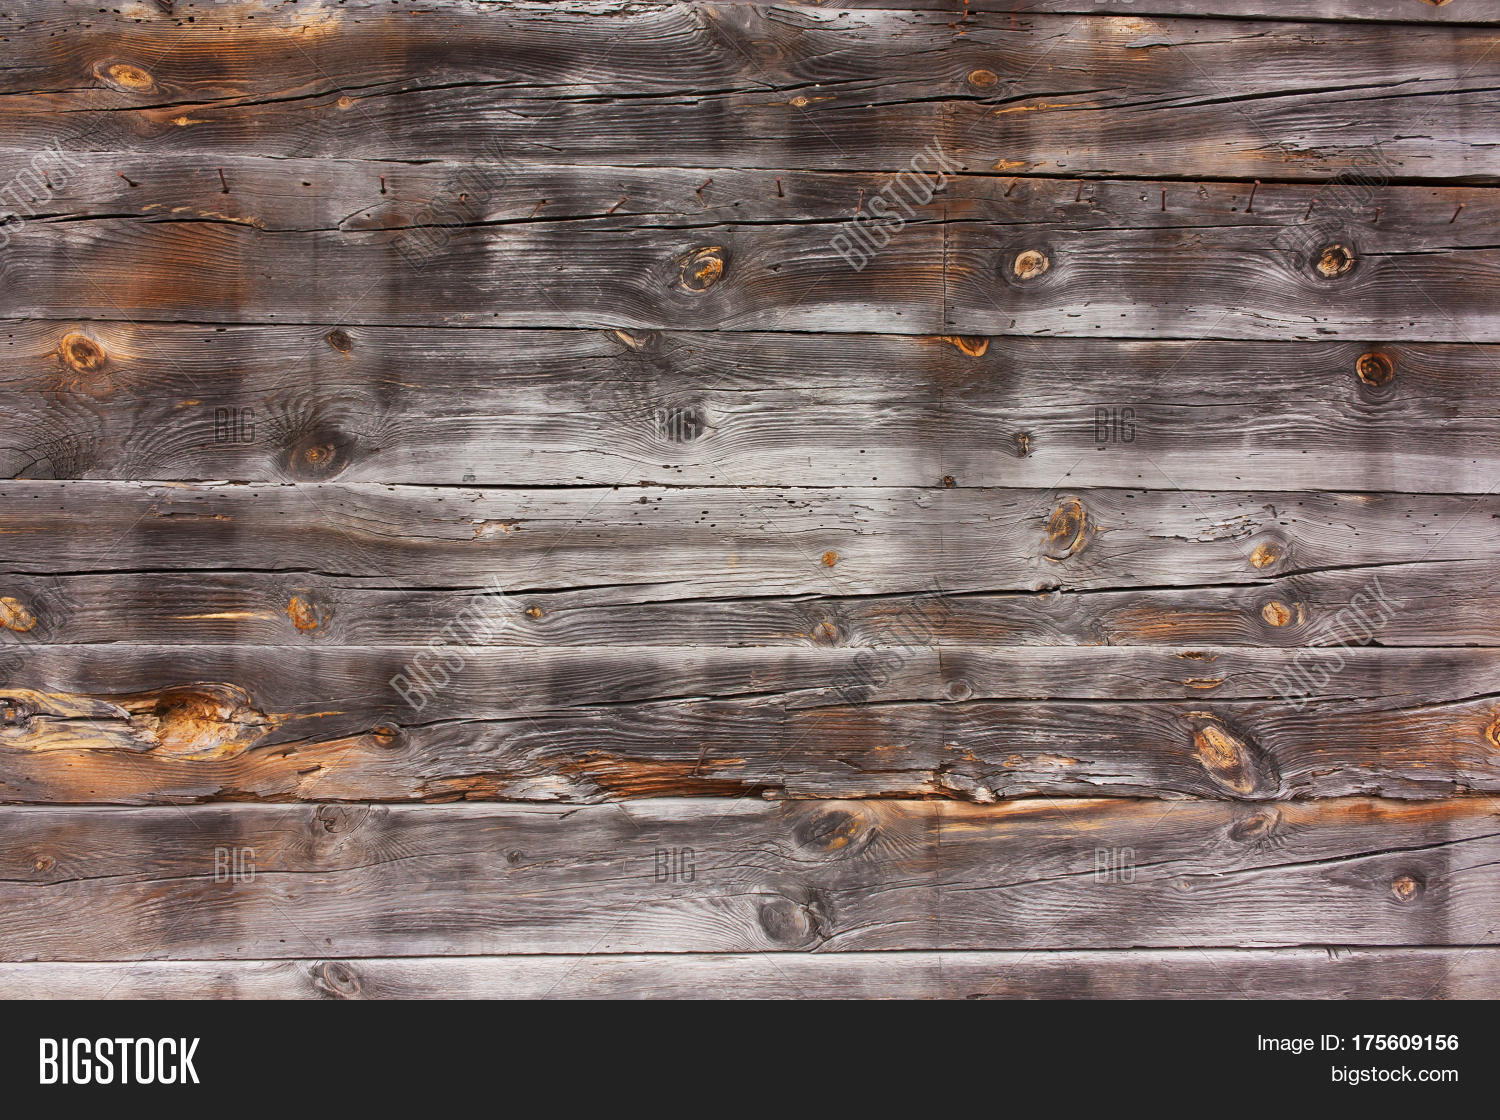 Wooden Horizontal Old Worn Burnt Image Photo Bigstock